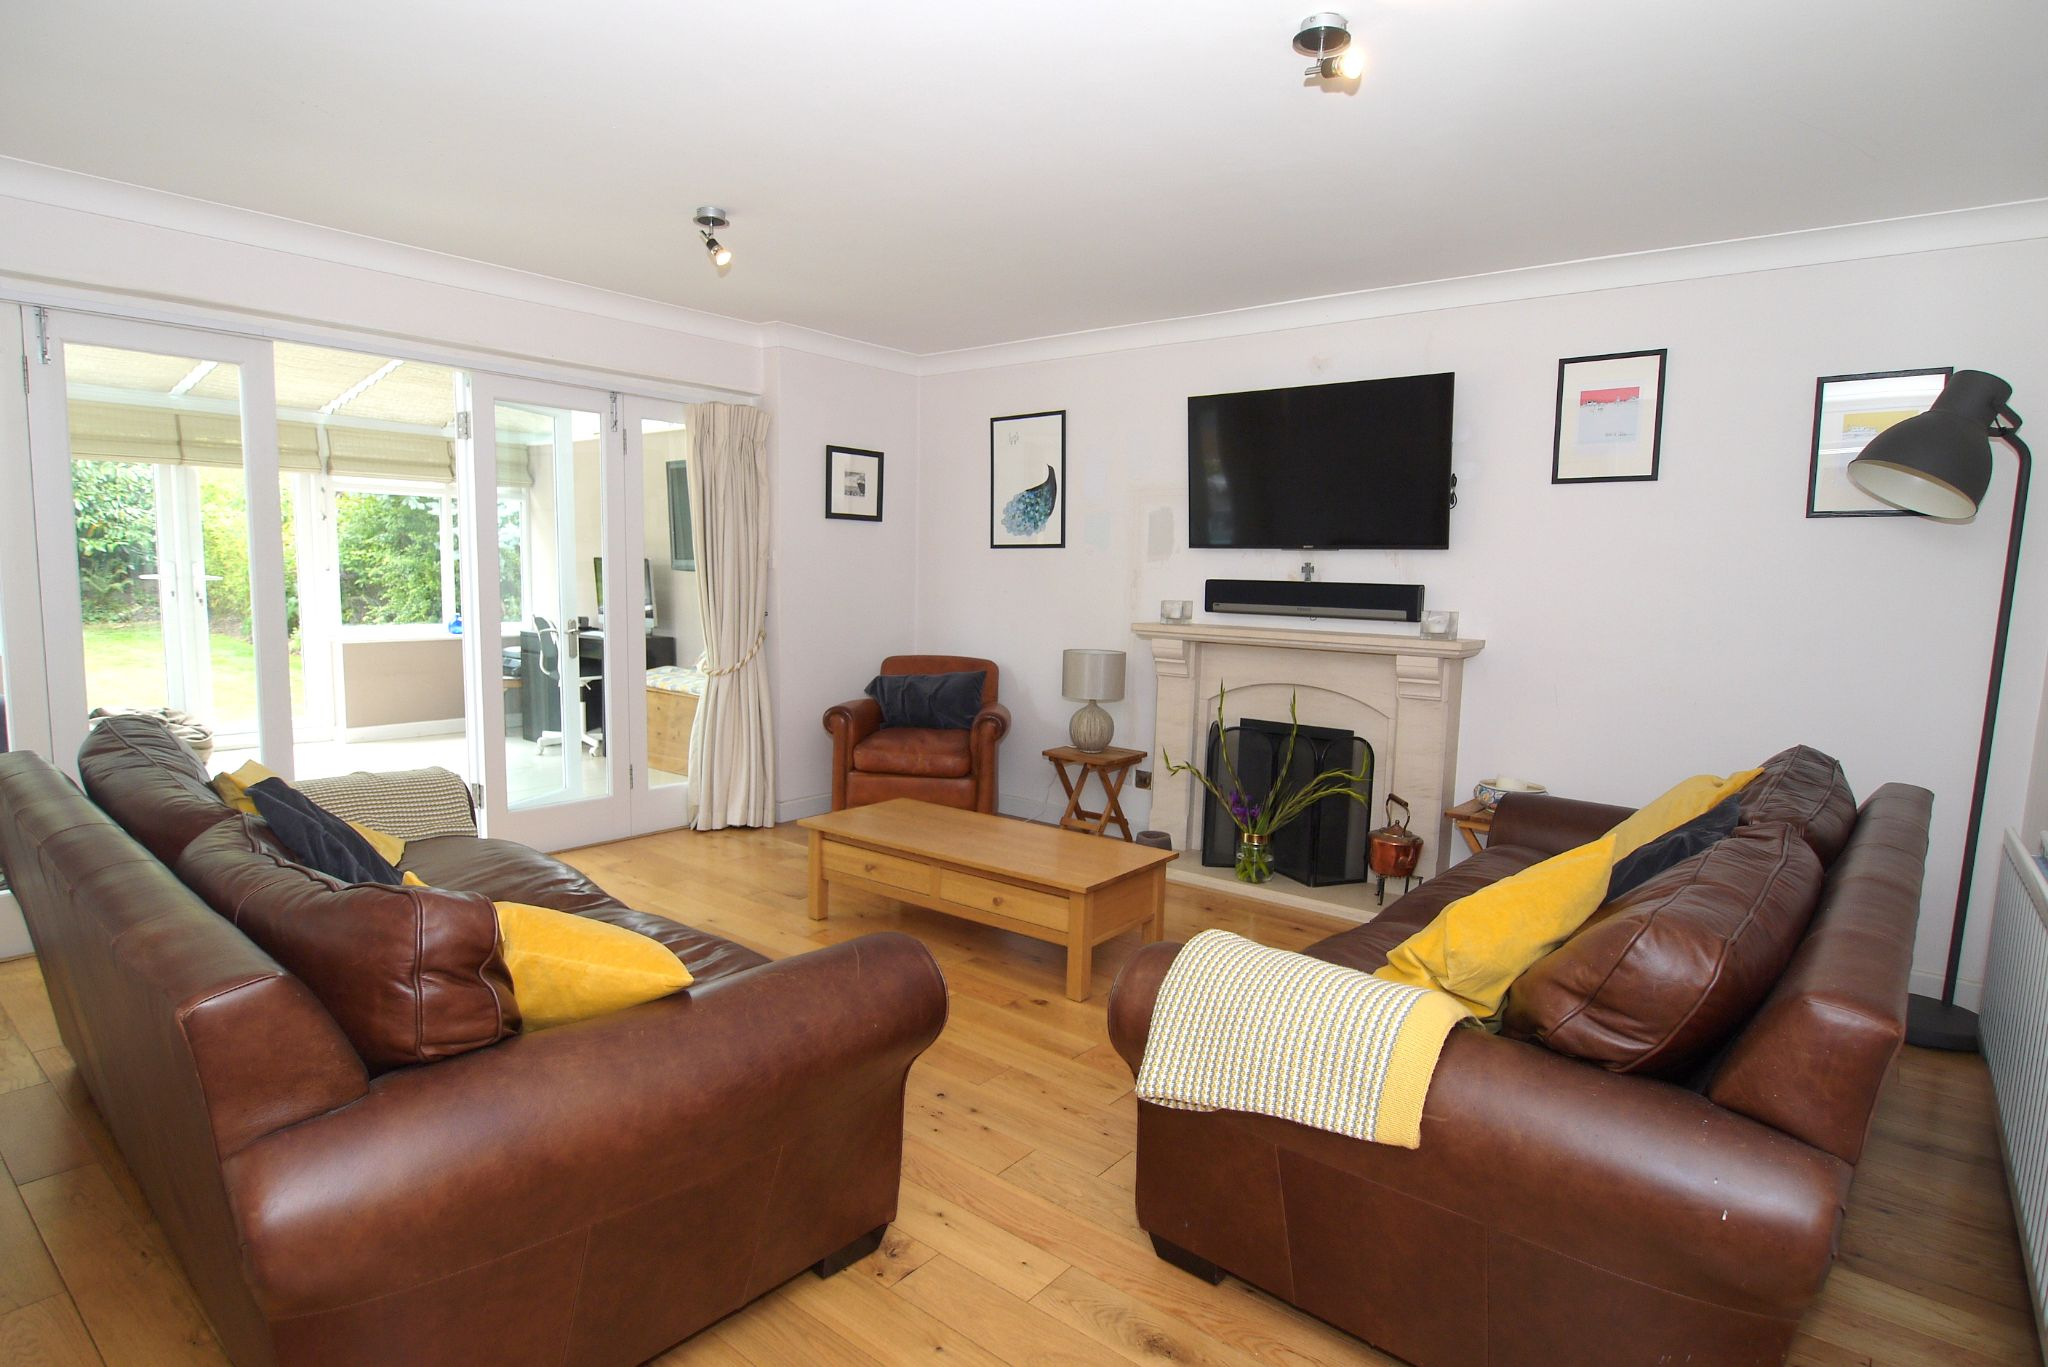 4 bedroom detached house Sold in Sevenoaks - Photograph 2